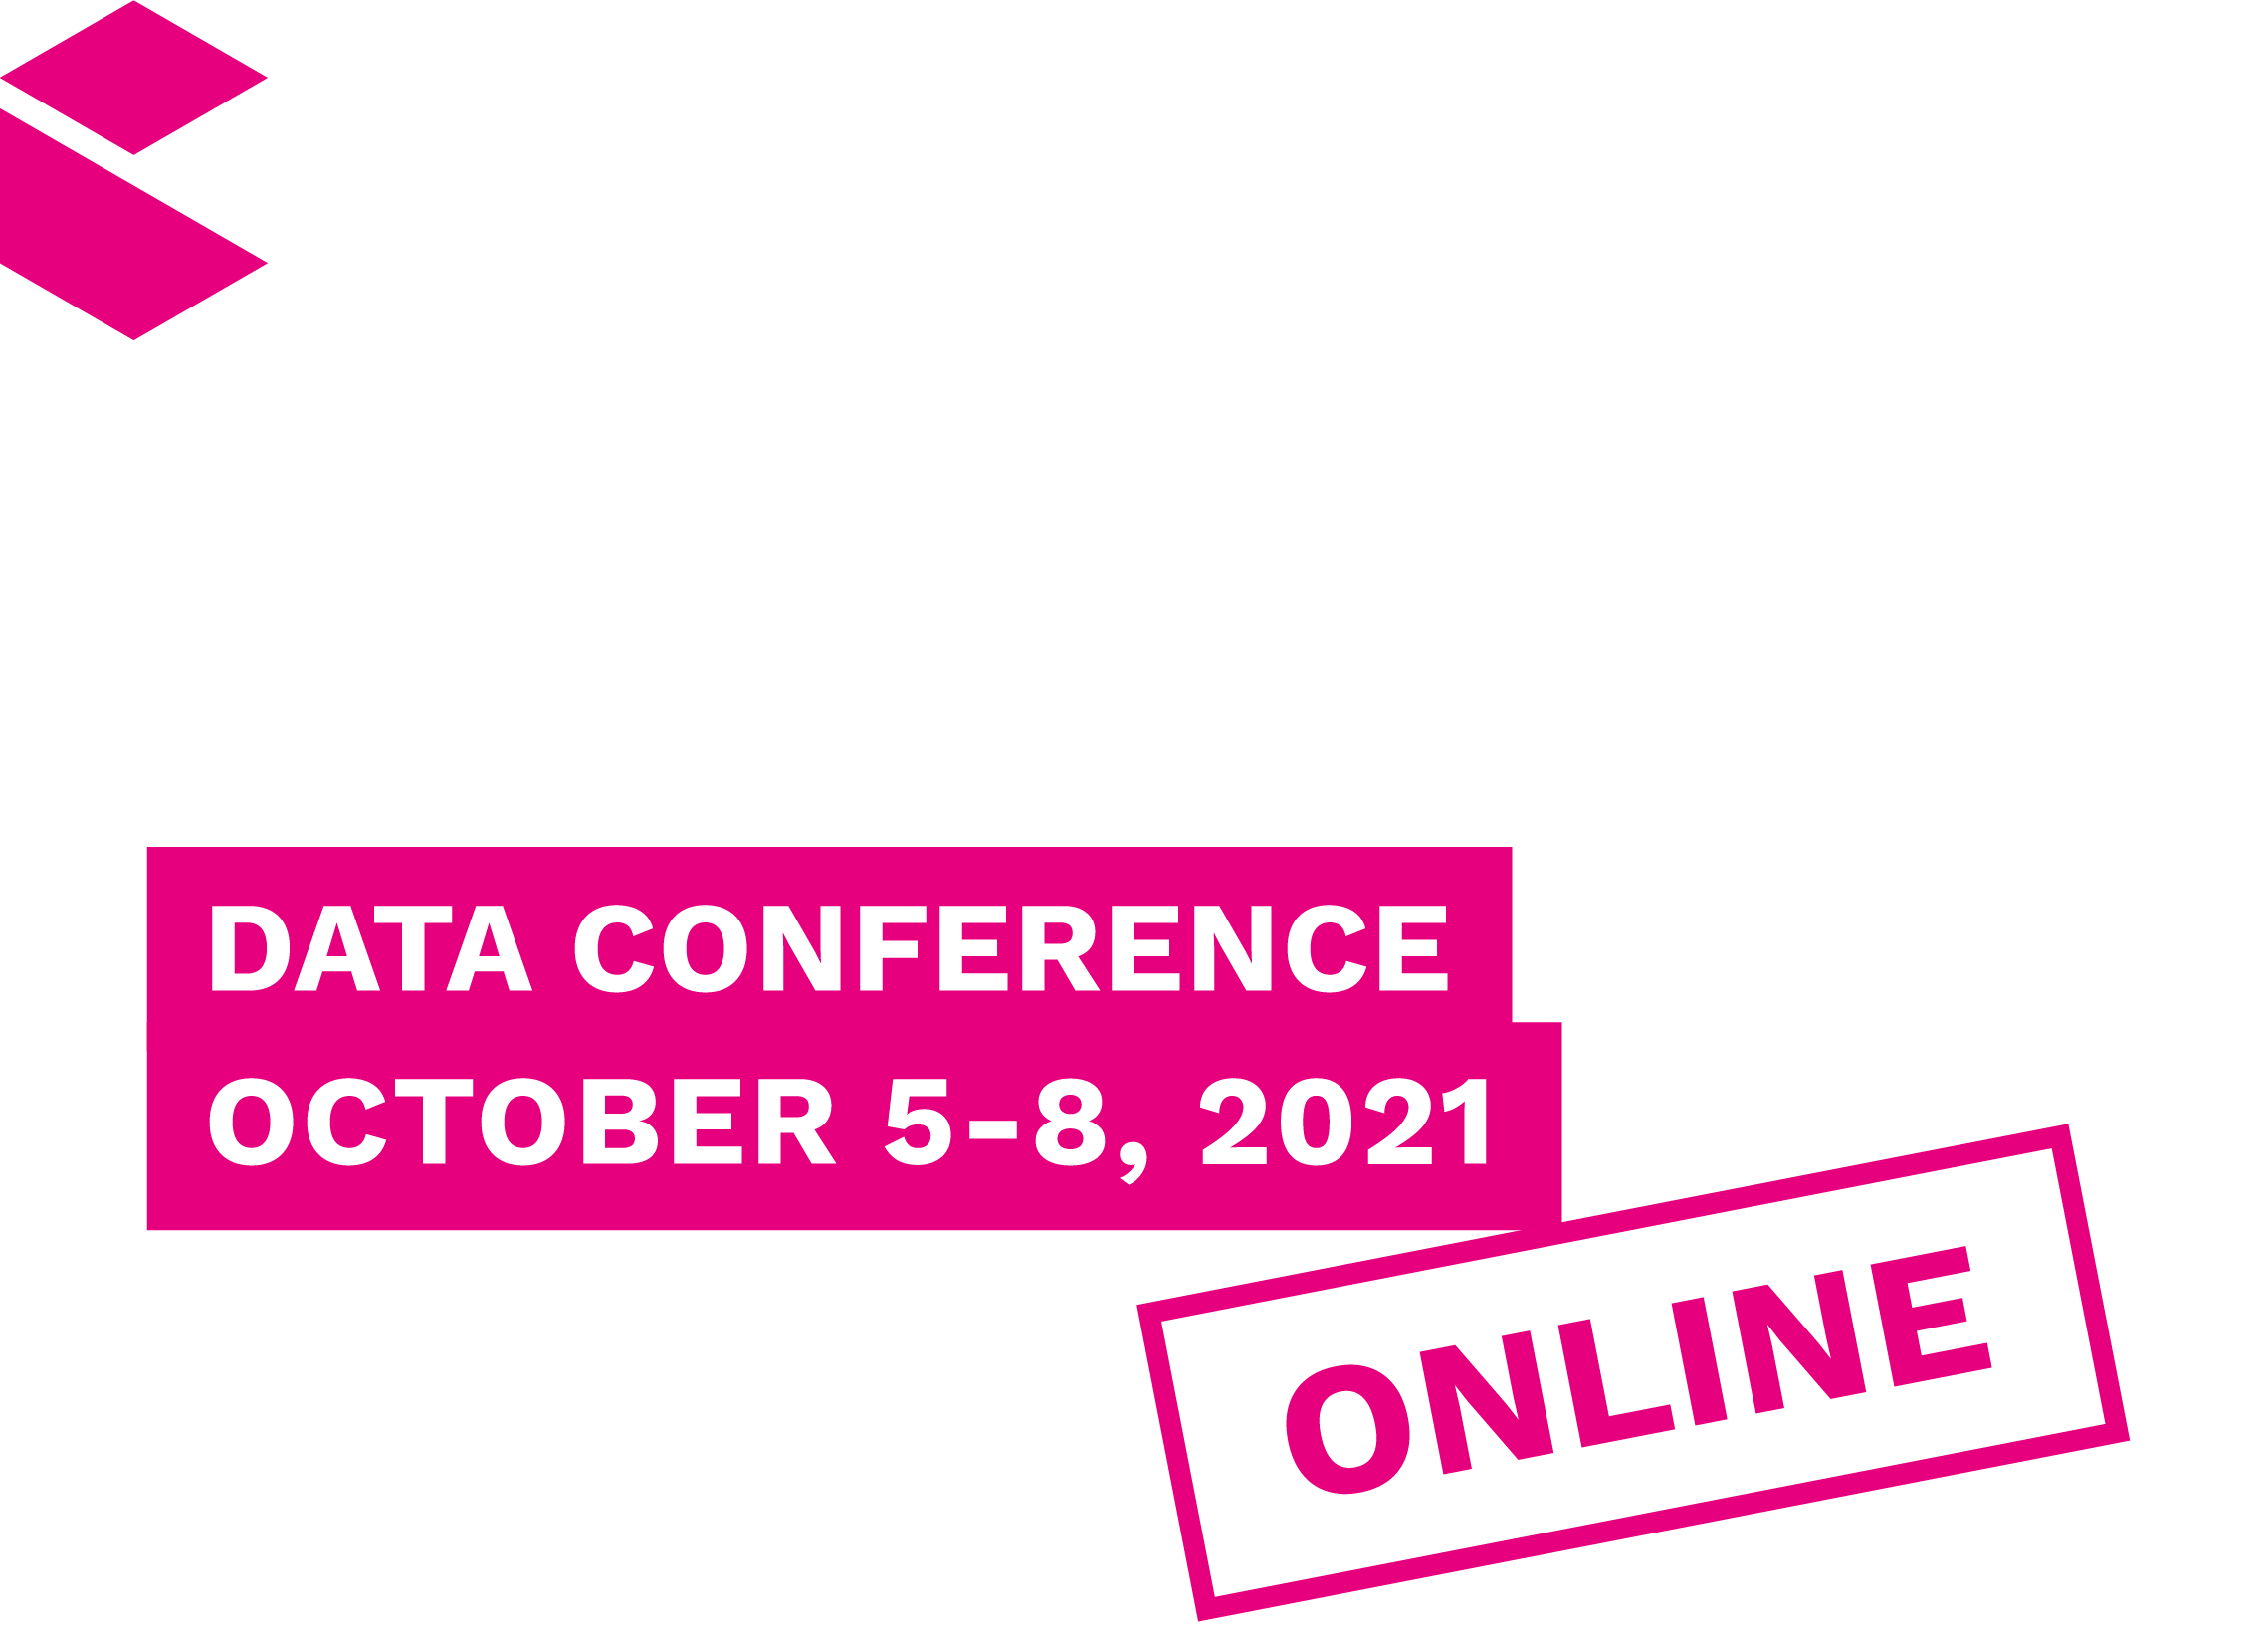 Crunch, Data Conference, October 6-8, 2021 Budapest